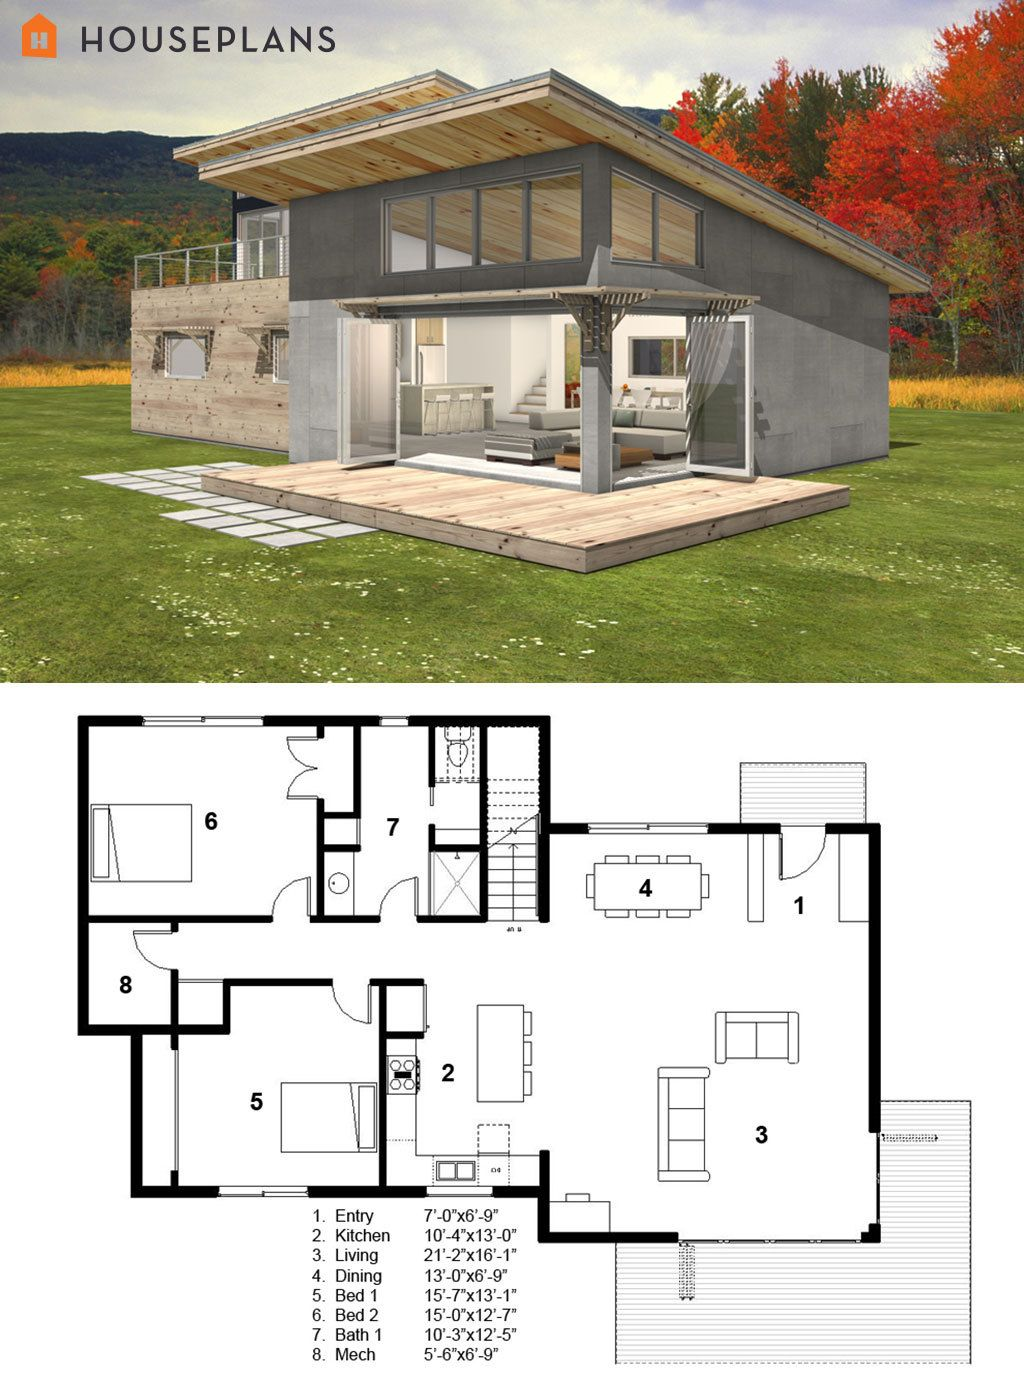 Modern style house plan 3 beds baths 2115 sq ft Floor plan of a modern house